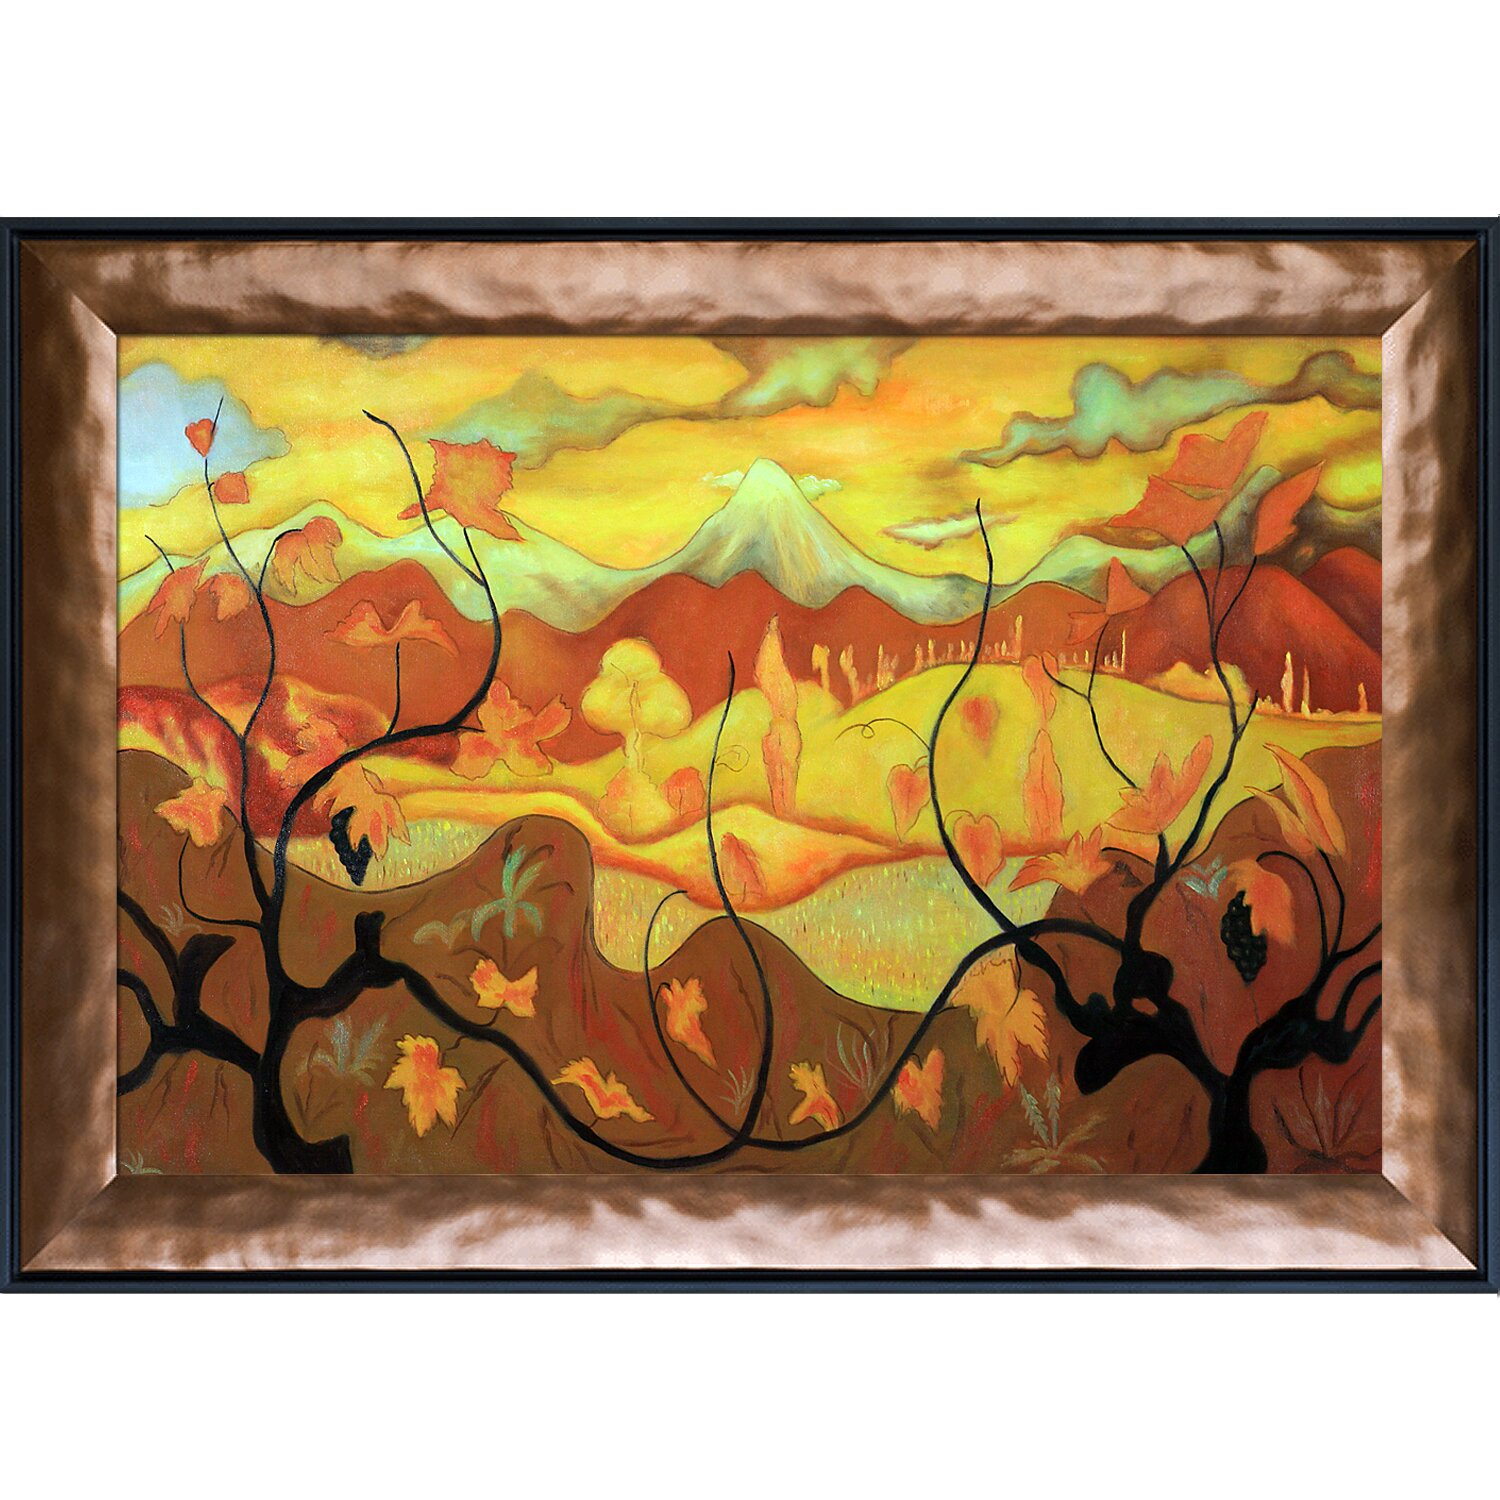 Tori Home Vines by Paul Ranson Painting Print on Canvas ...